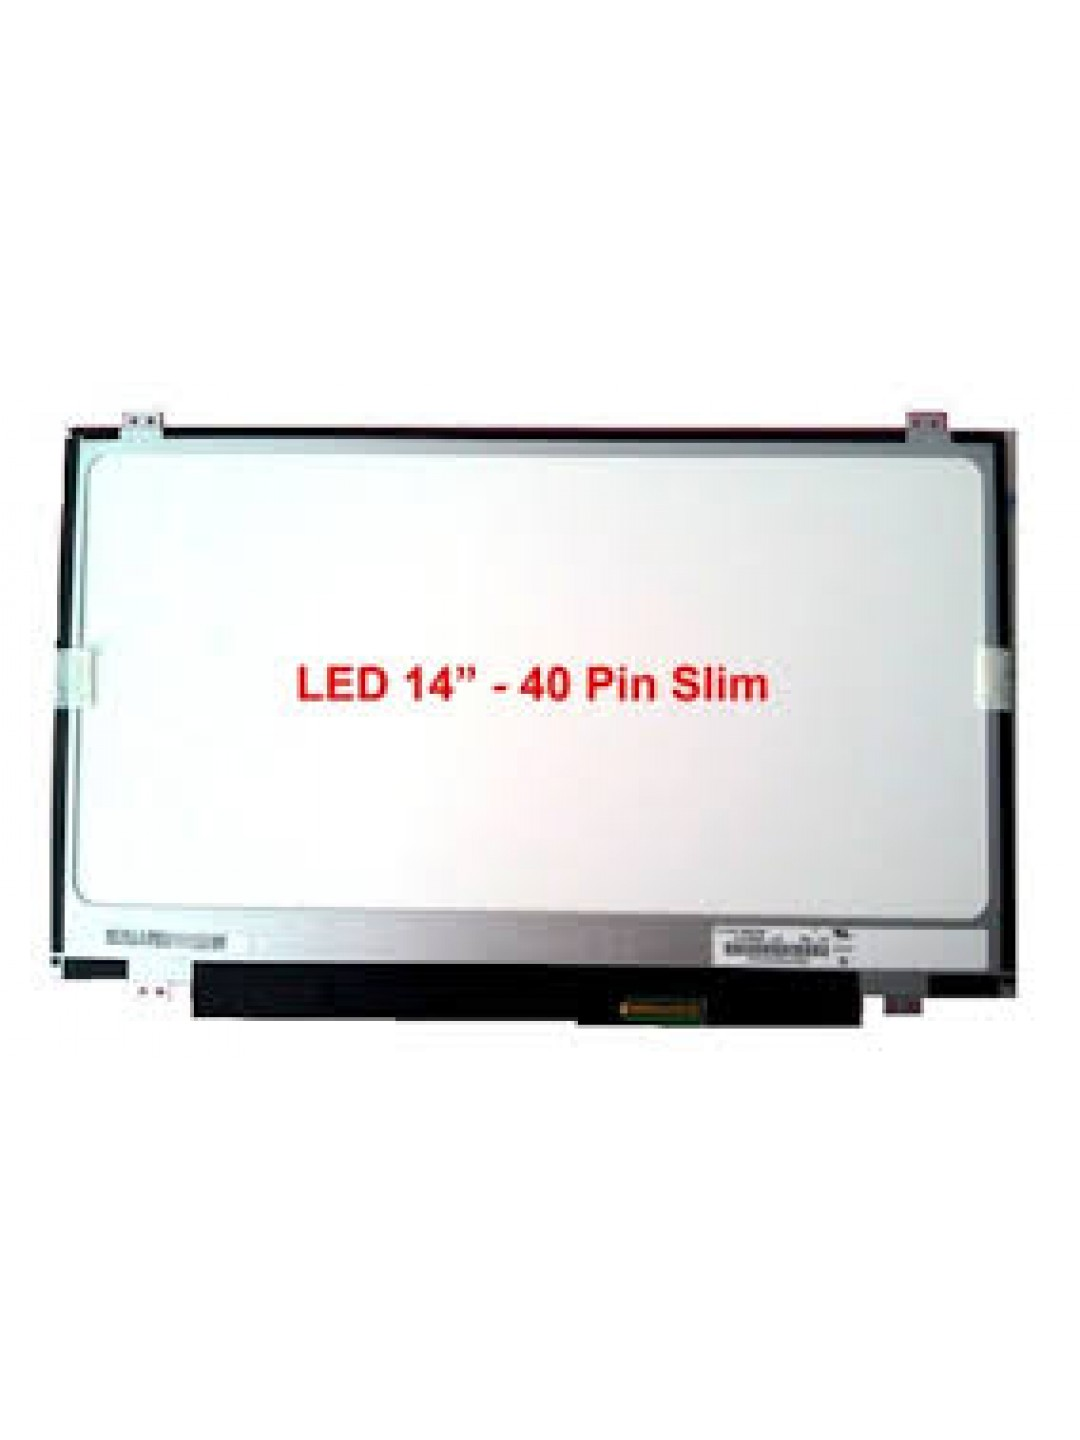 "LED 14"" SLIM 40 PIN"